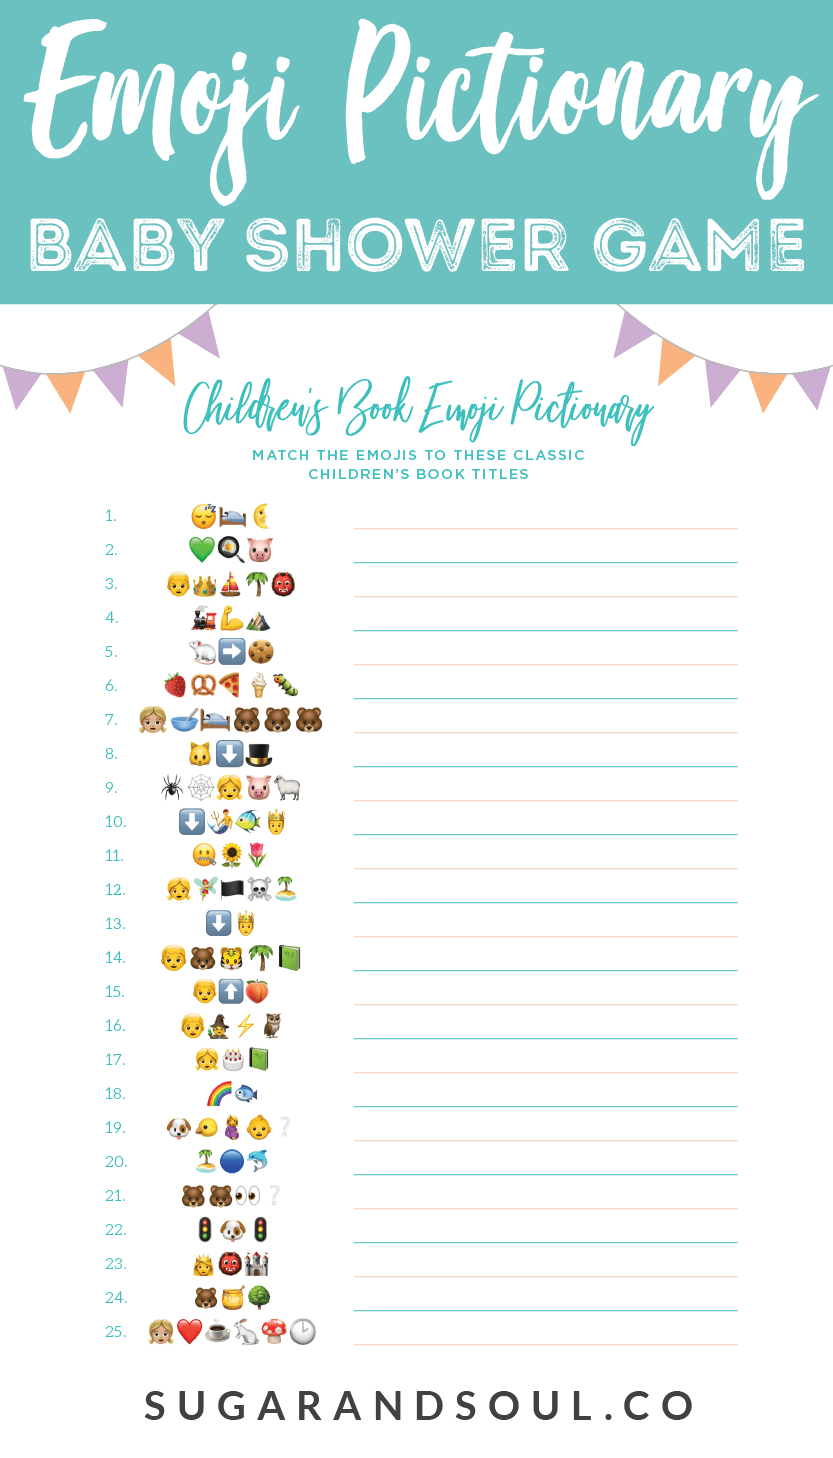 This Free Emoji Pictionary Baby Shower Game Printable Uses Emoji - Free Printable Baby Shower Games For Large Groups